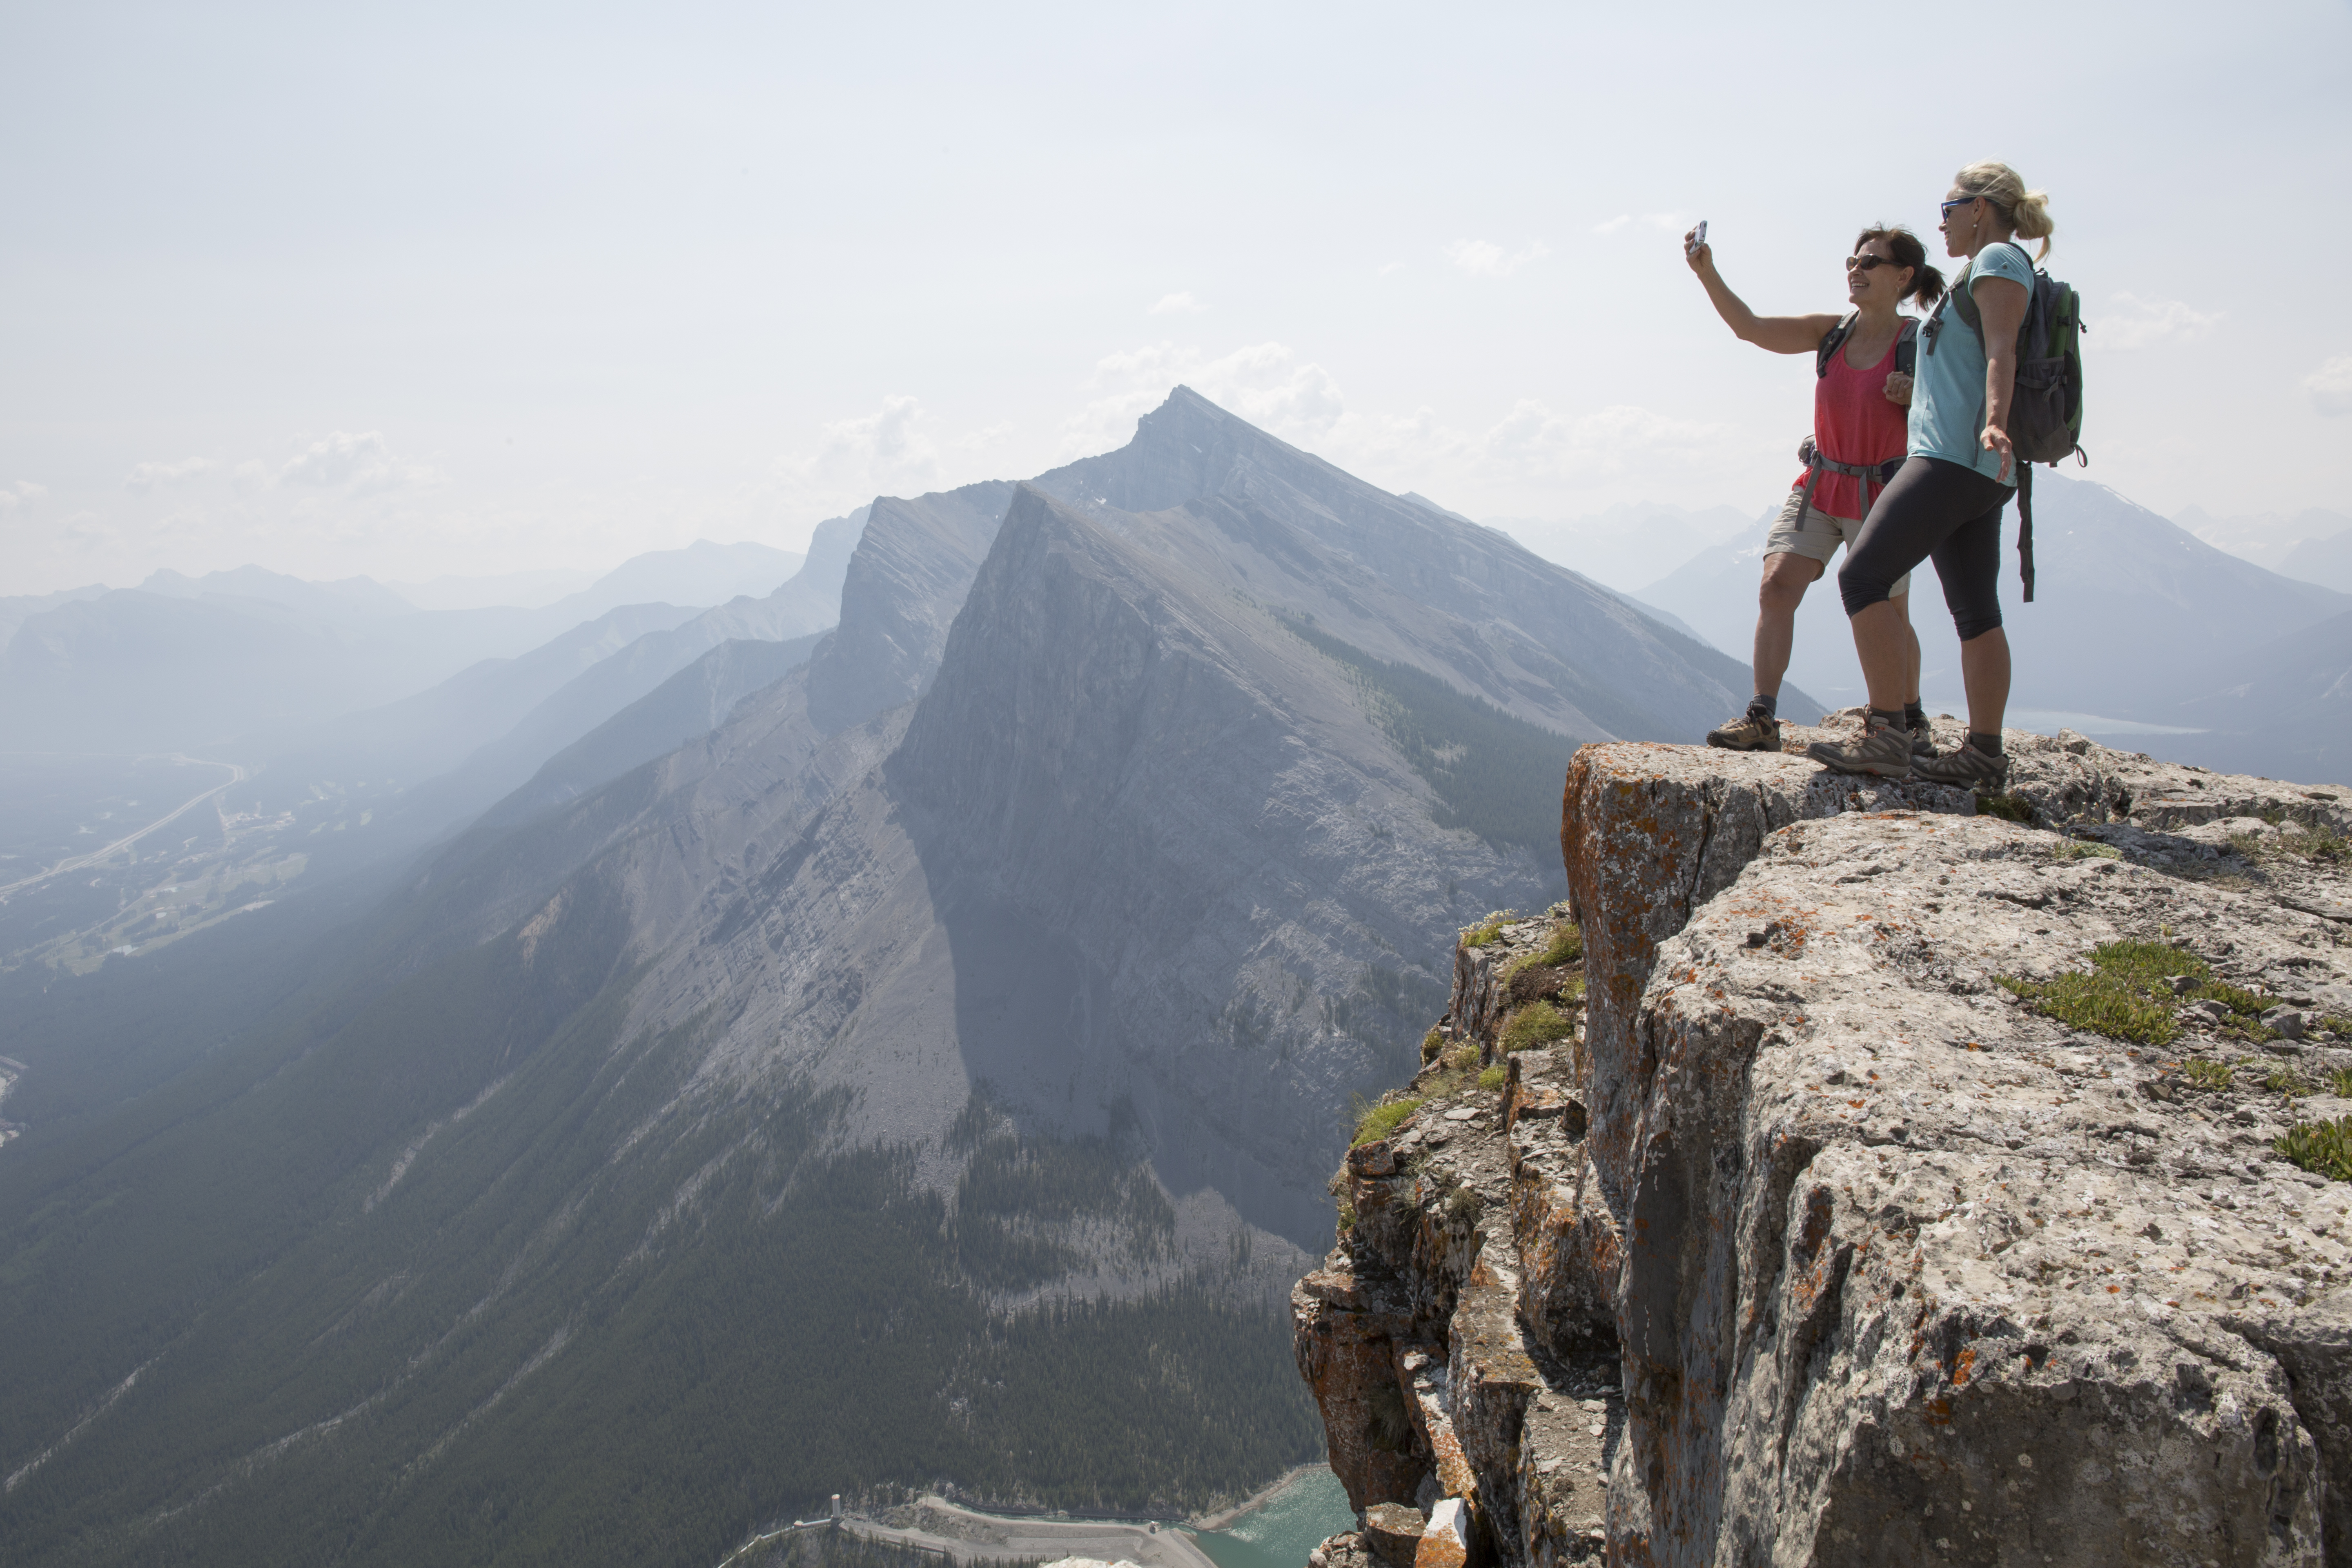 Female hikers take selfie pic on top of mountain